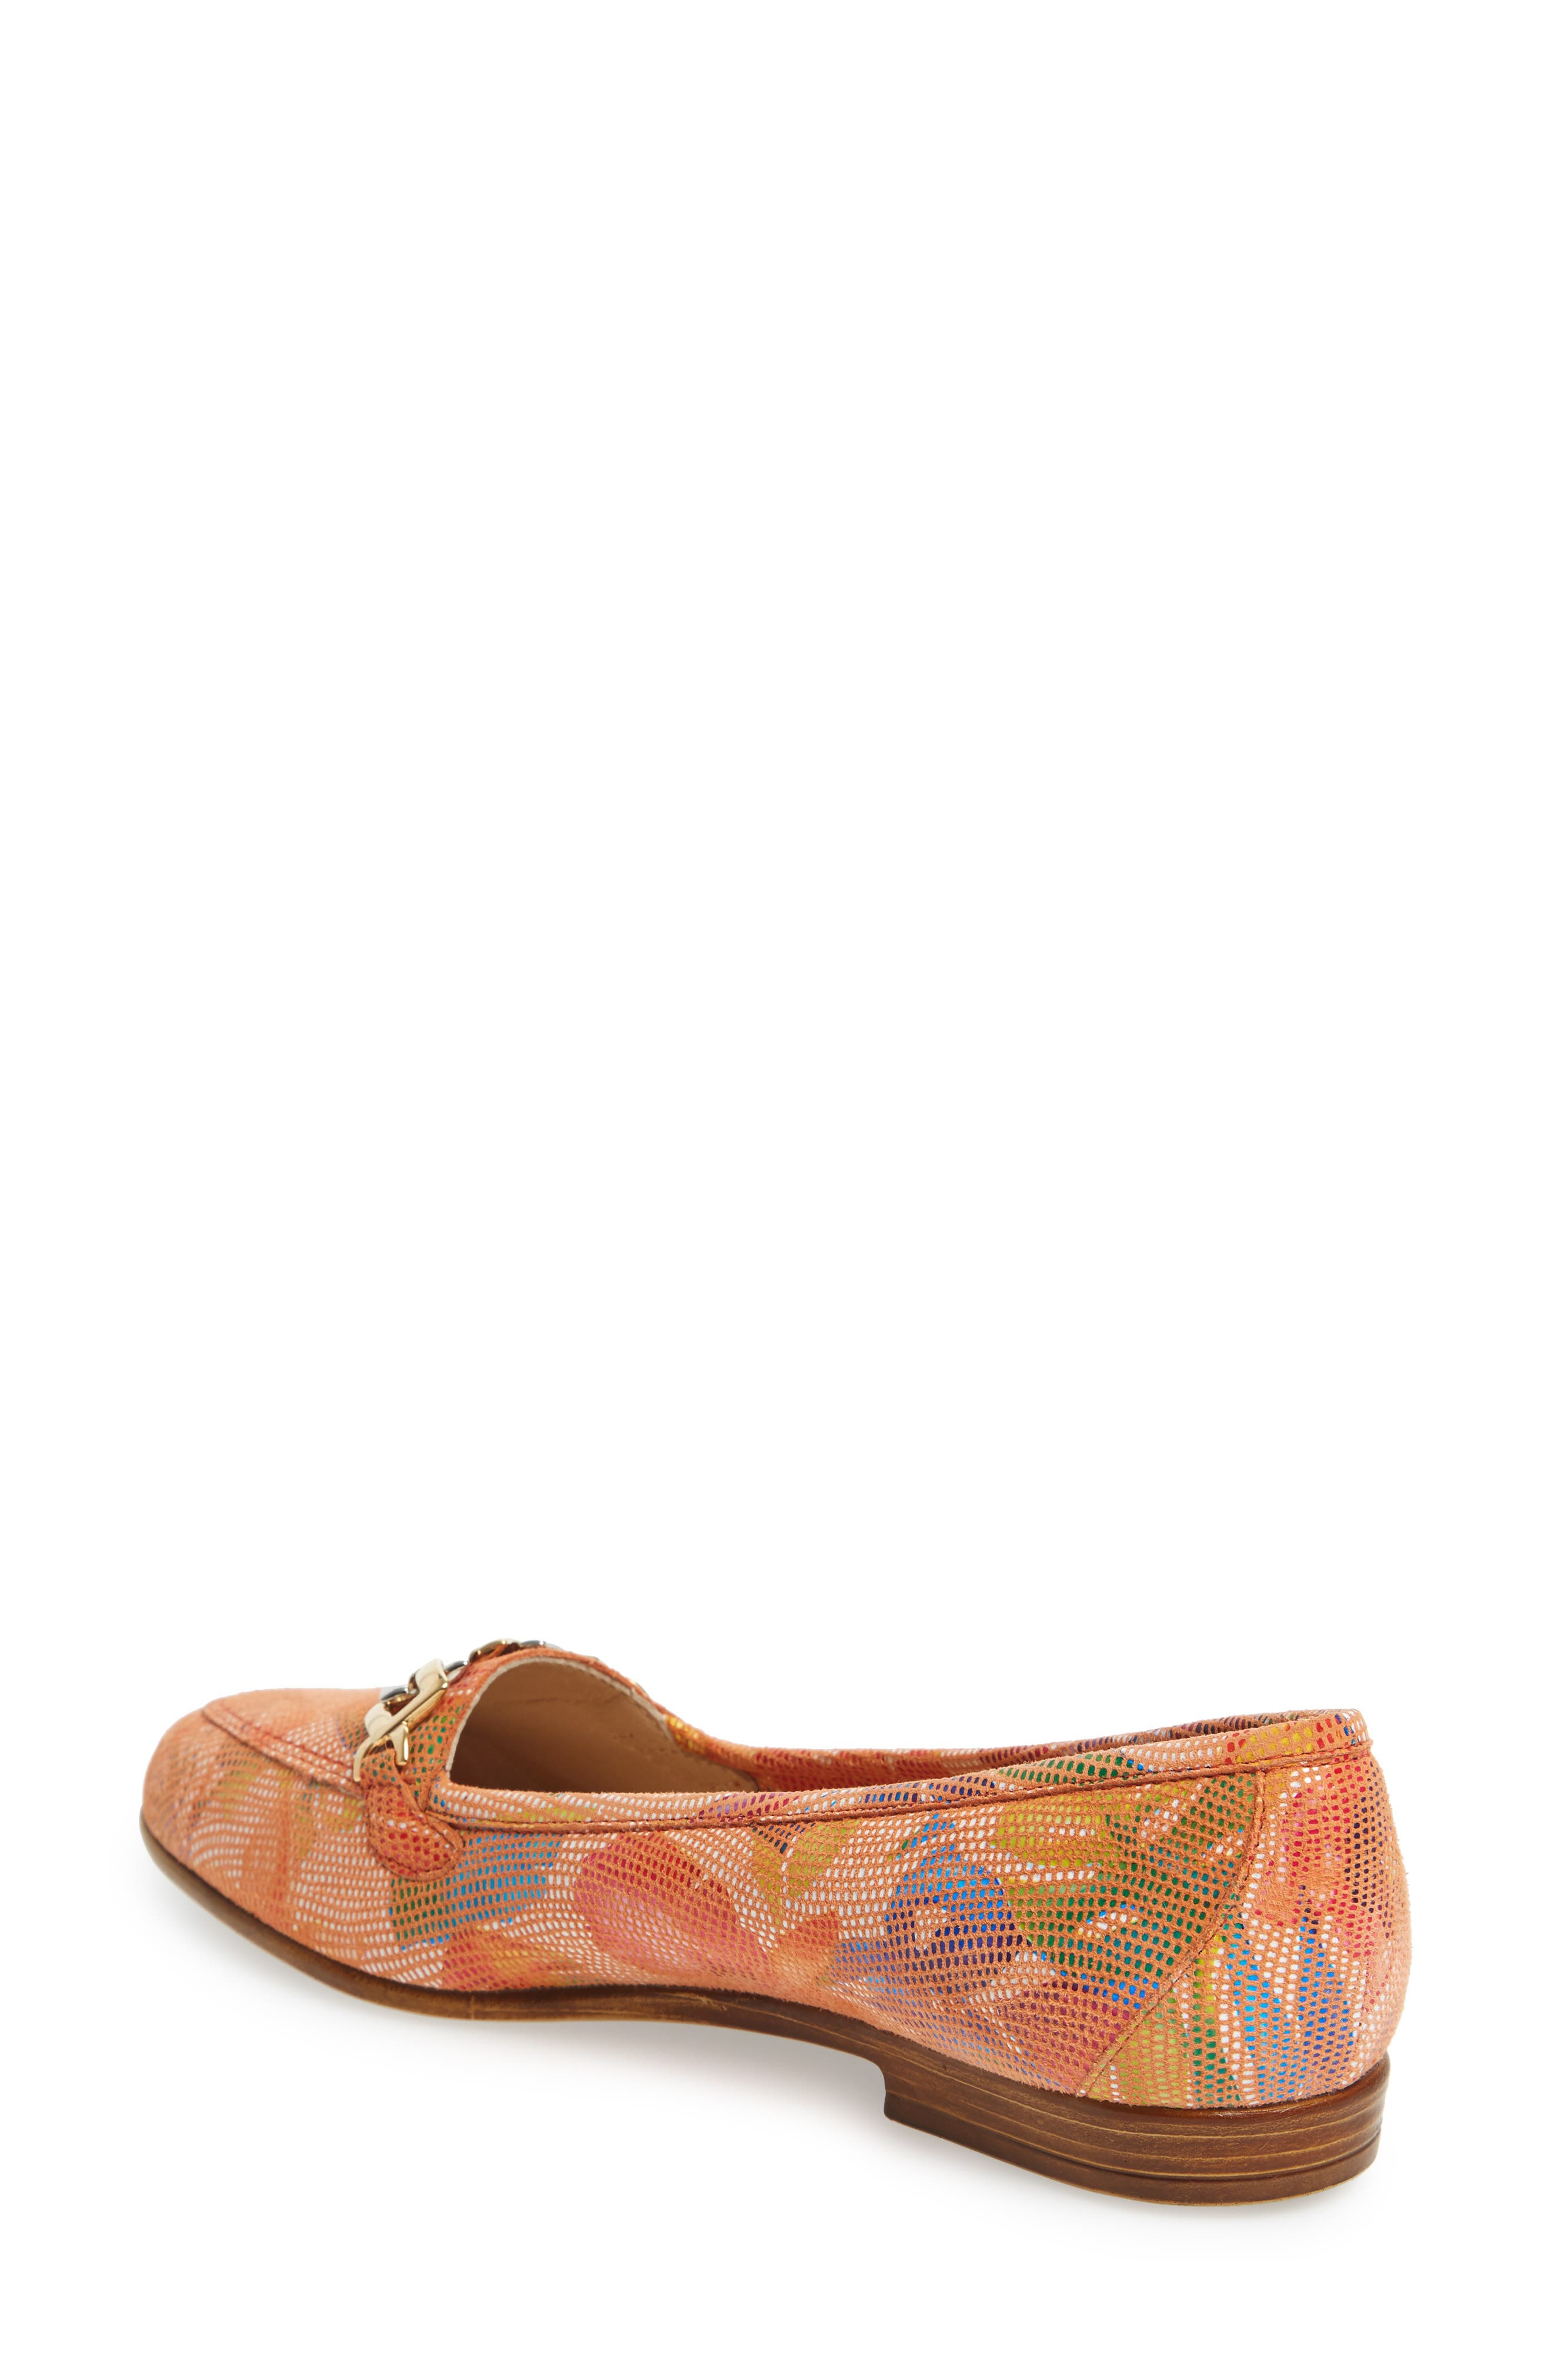 Oste Loafer,                             Alternate thumbnail 2, color,                             Salmon Leather